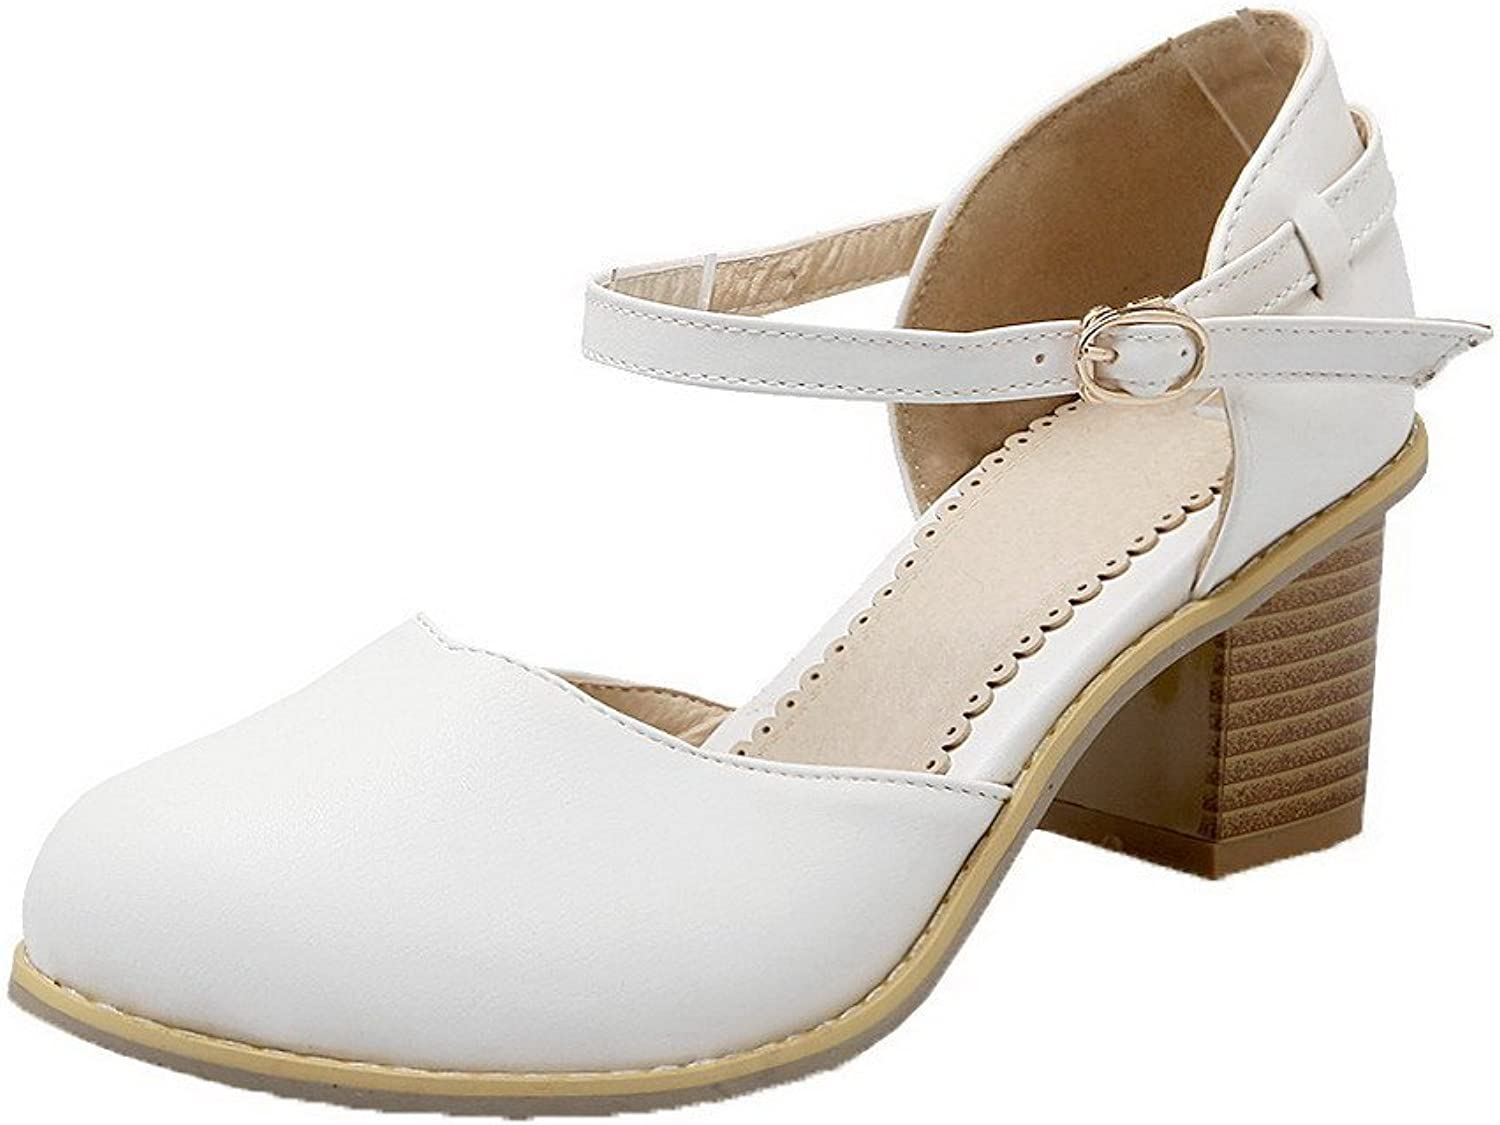 AmoonyFashion Women's Round Closed Toe Buckle Court shoes